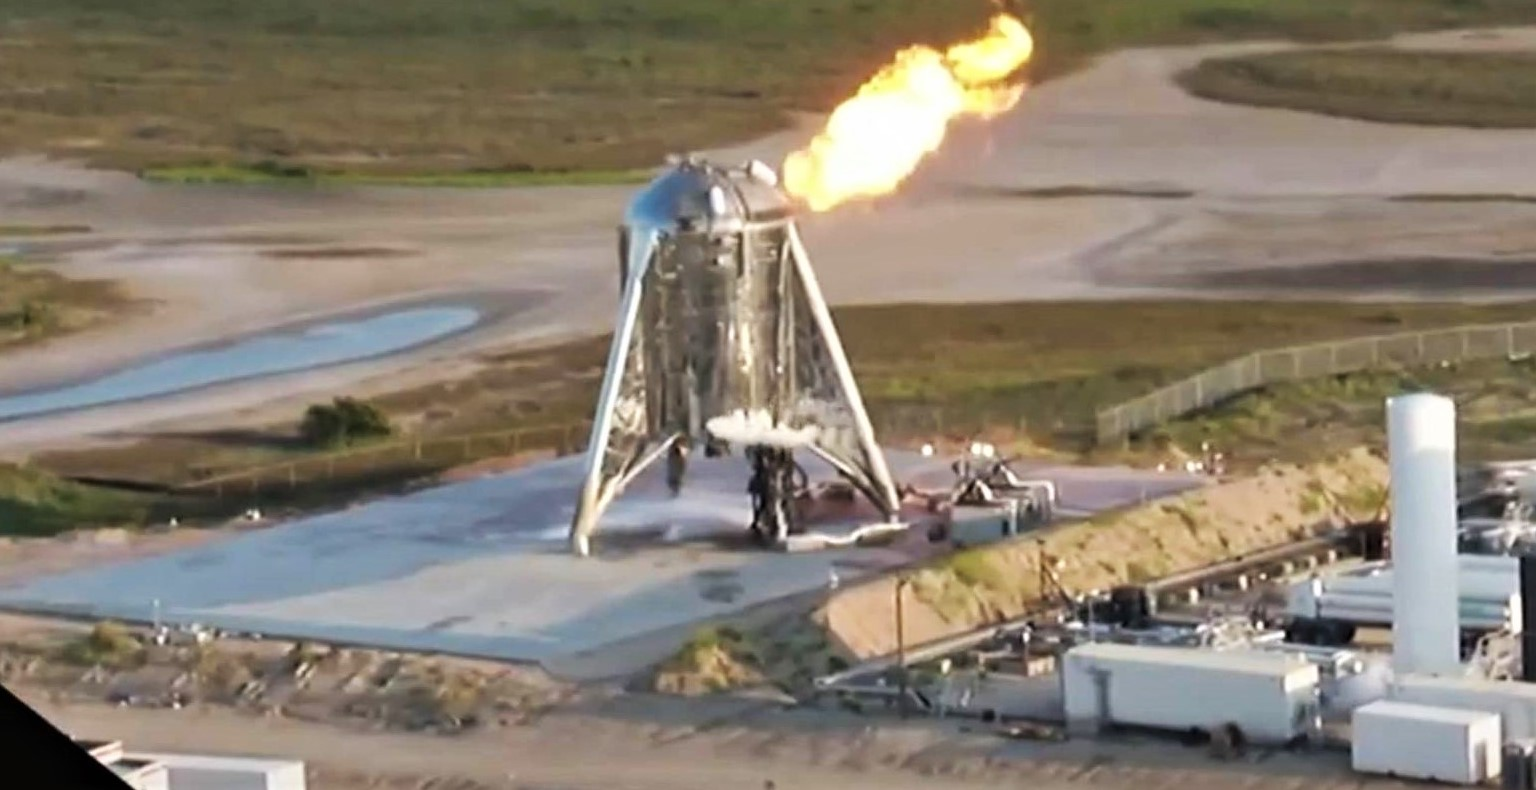 Starhopper 20m hop test (SpaceX) webcast 8 crop